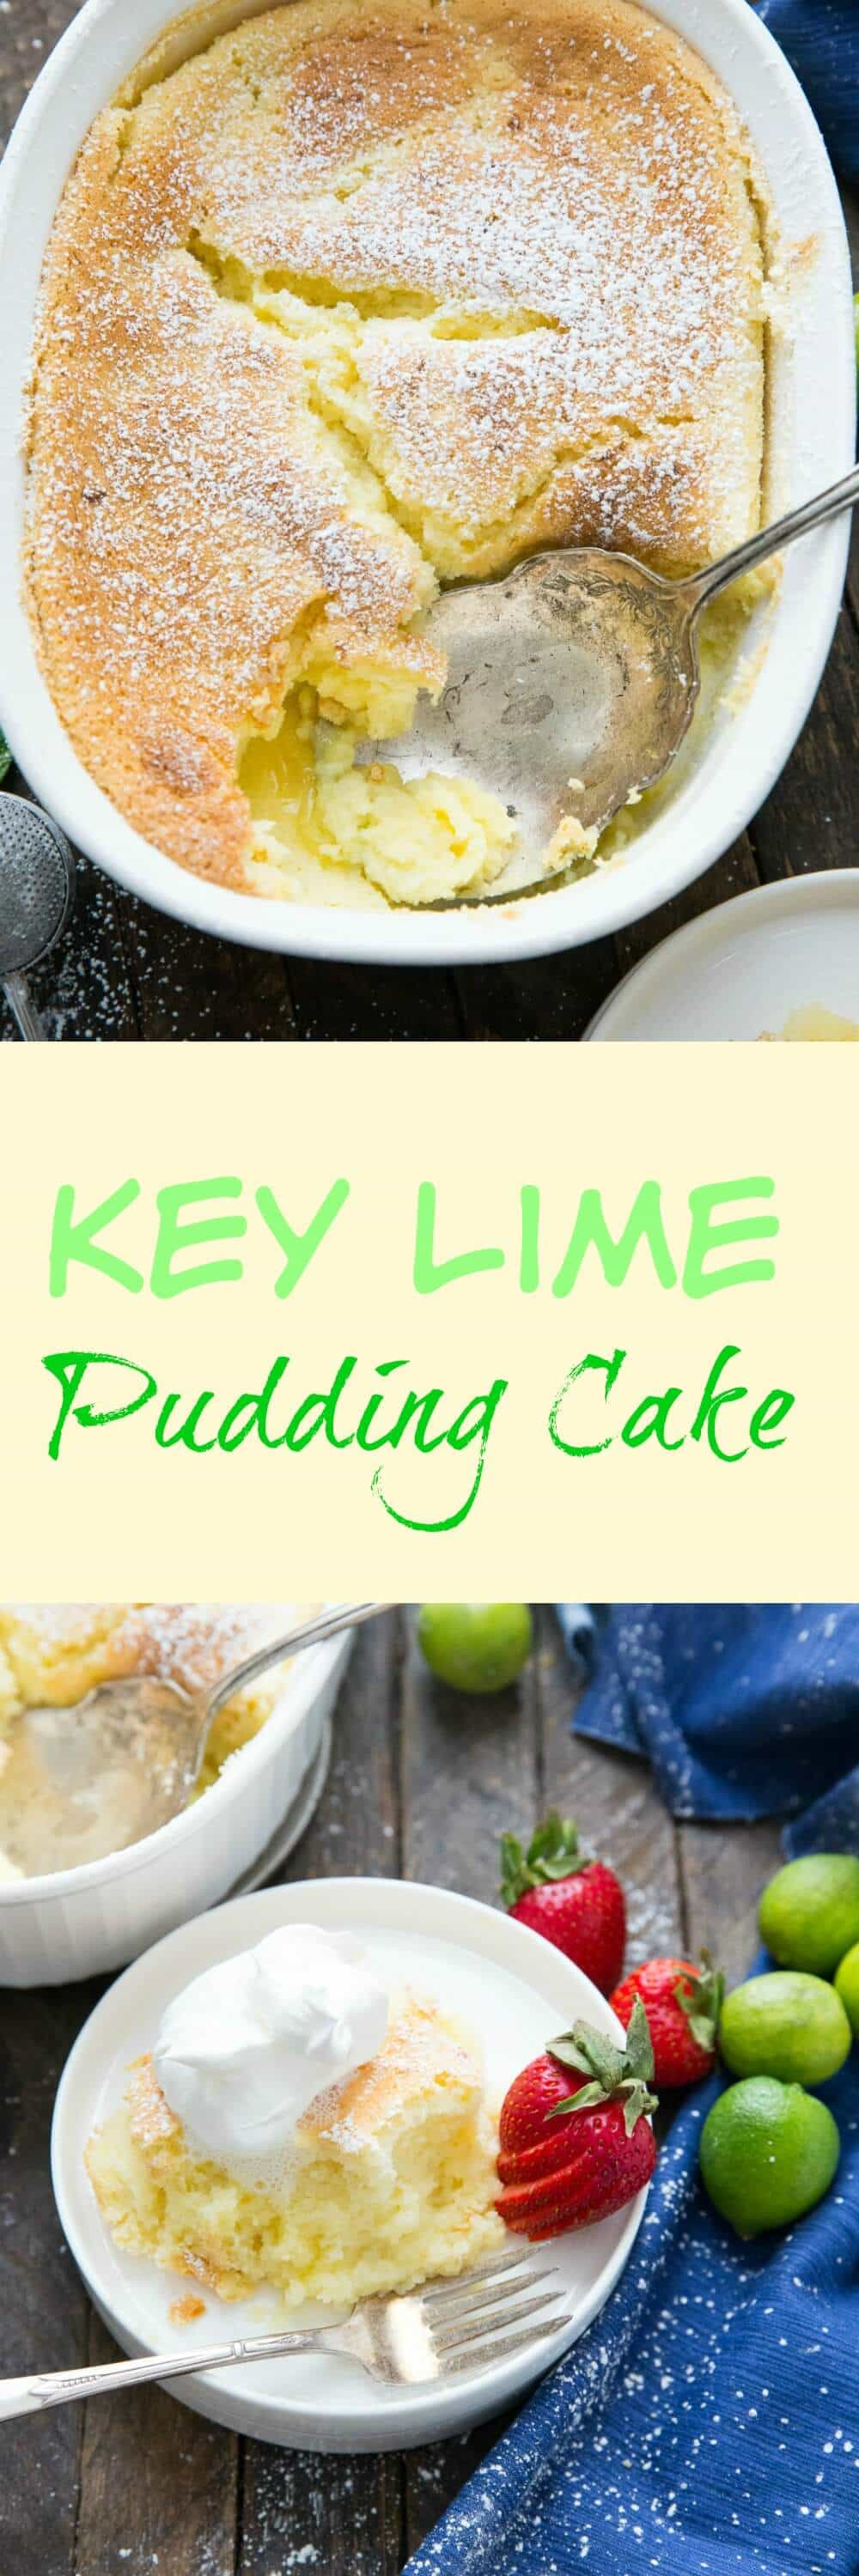 Pudding cakes are magical! This dessert features a light cake layer that gets baked up over a tangy pudding layer. This is impressive yet simple!